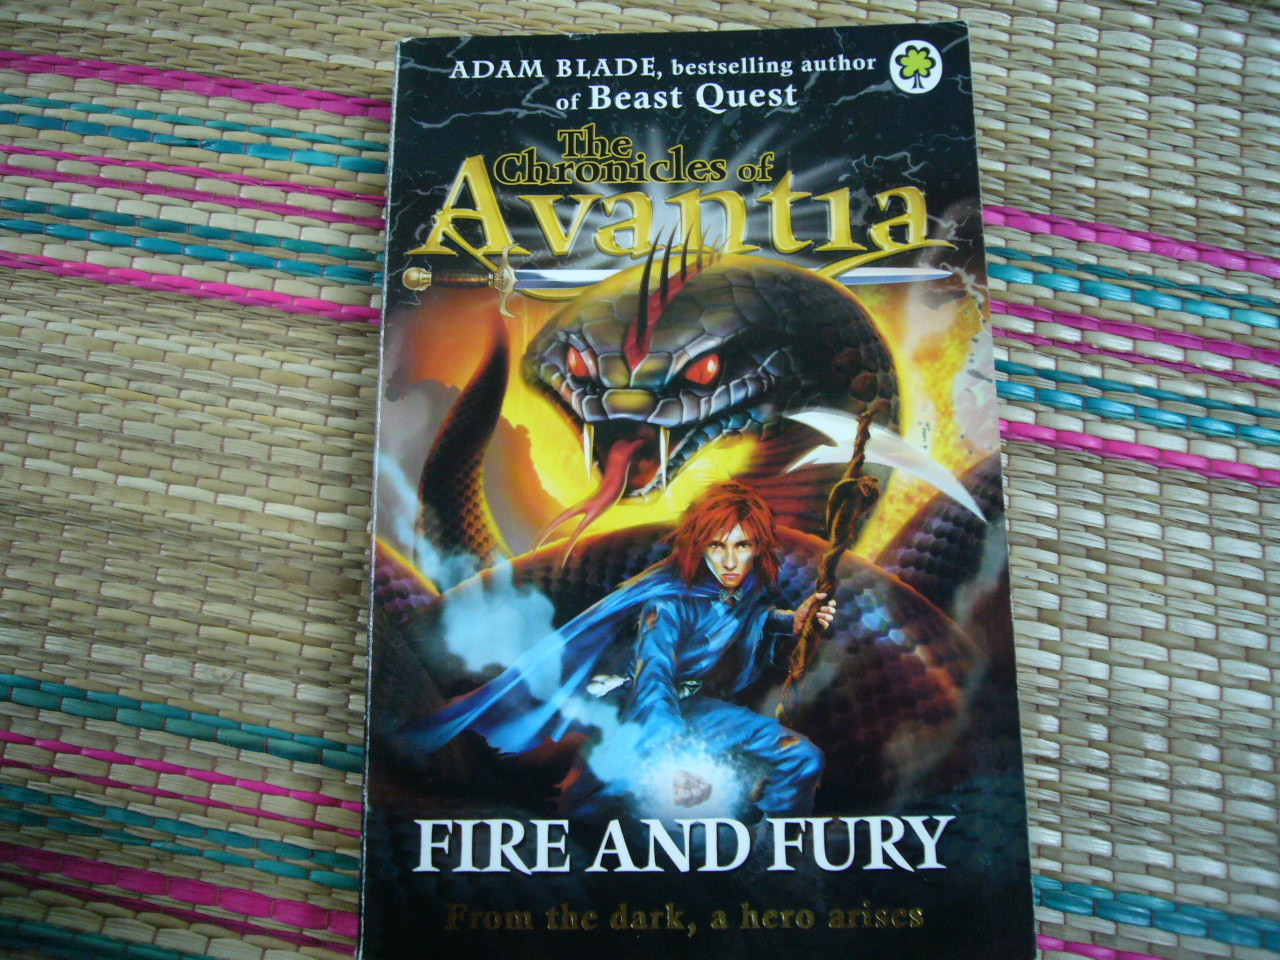 FIRE and FURY (The Chronicles of Avantia)